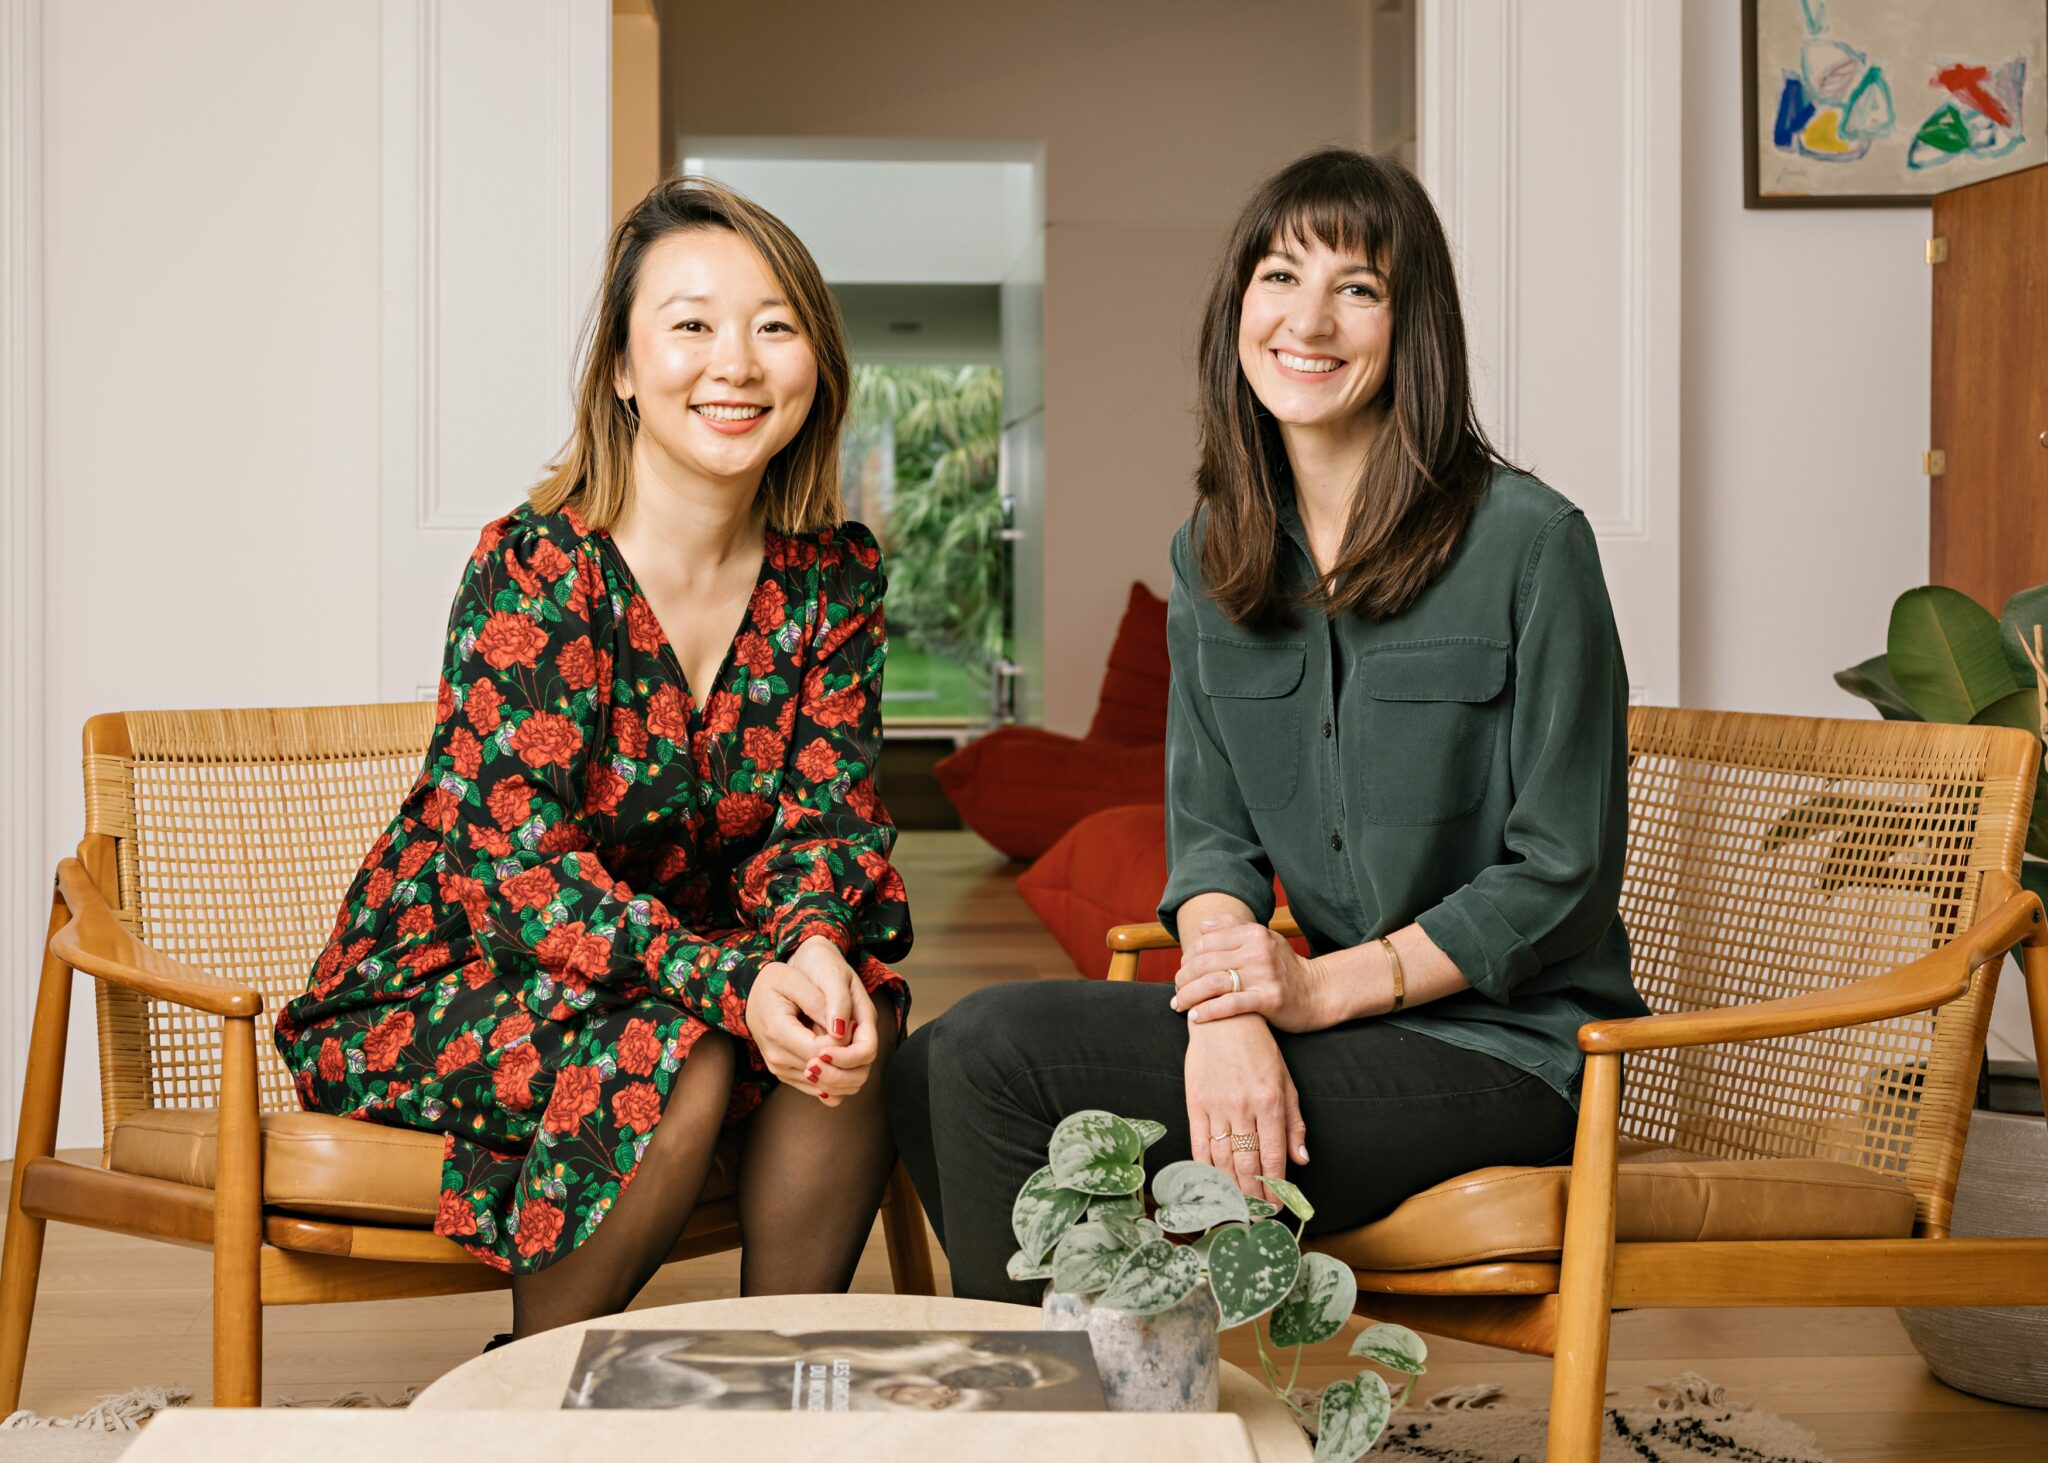 London-based Vinterior raises €9.3 million to become Europe's leading curated vintage marketplace for home decor